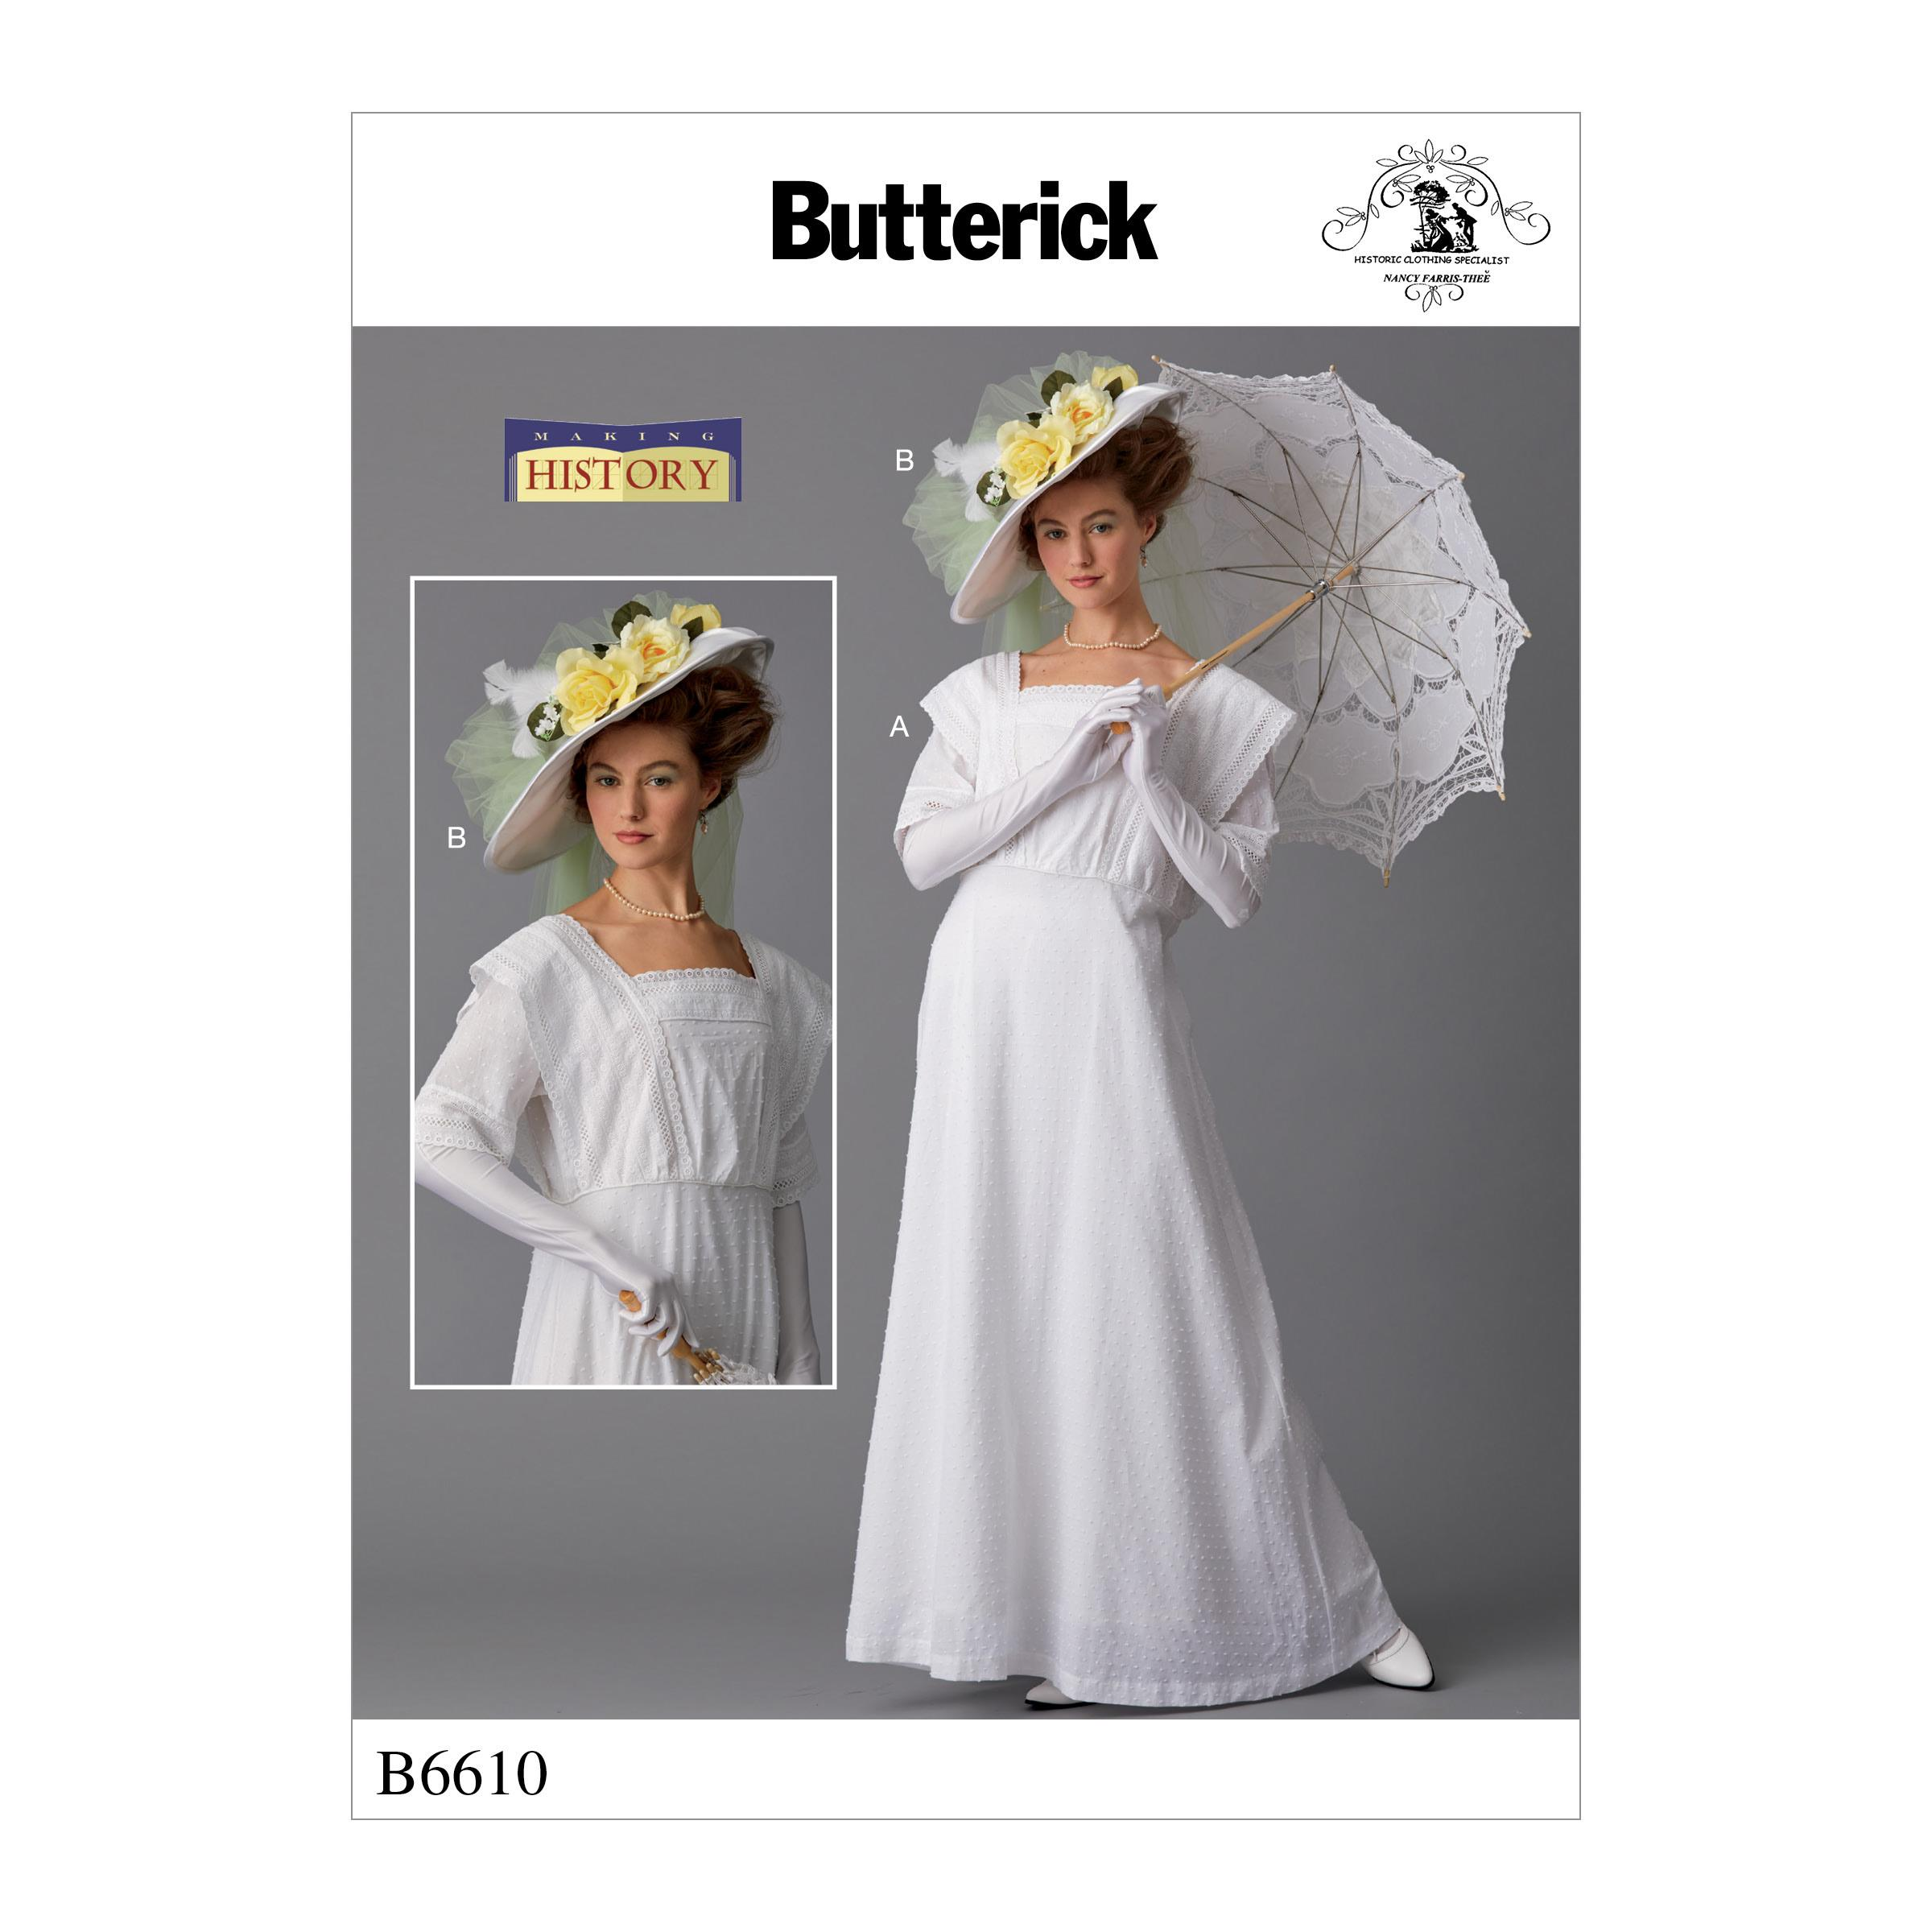 Butterick B6610 Misses' Costume and Hat